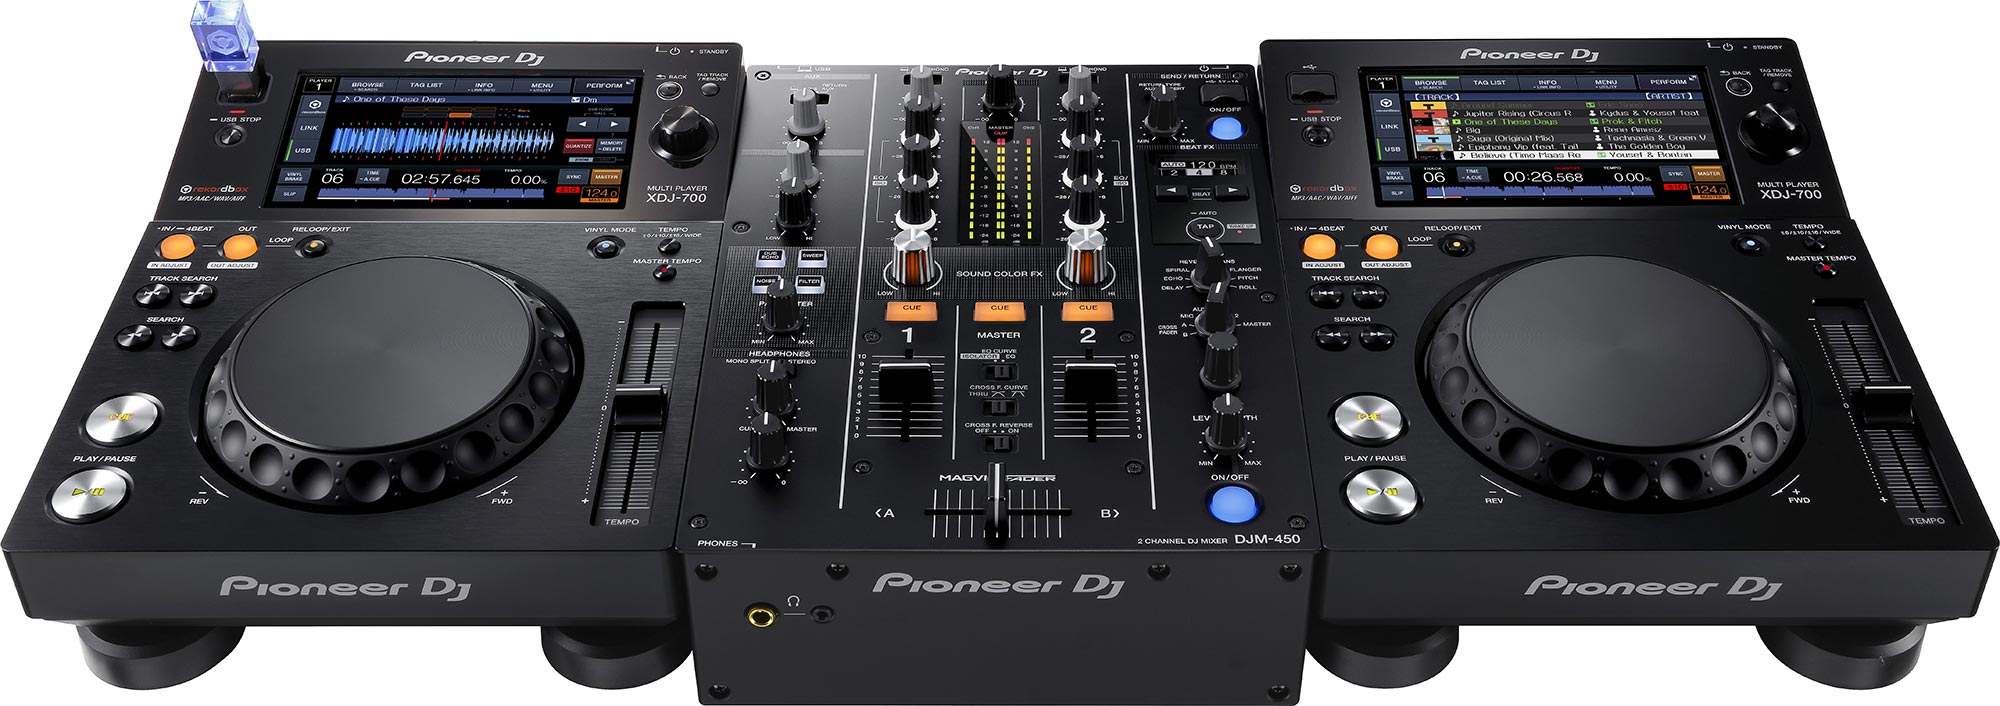 pioneer djm 450 2 channel dj mixer with audio interface. Black Bedroom Furniture Sets. Home Design Ideas